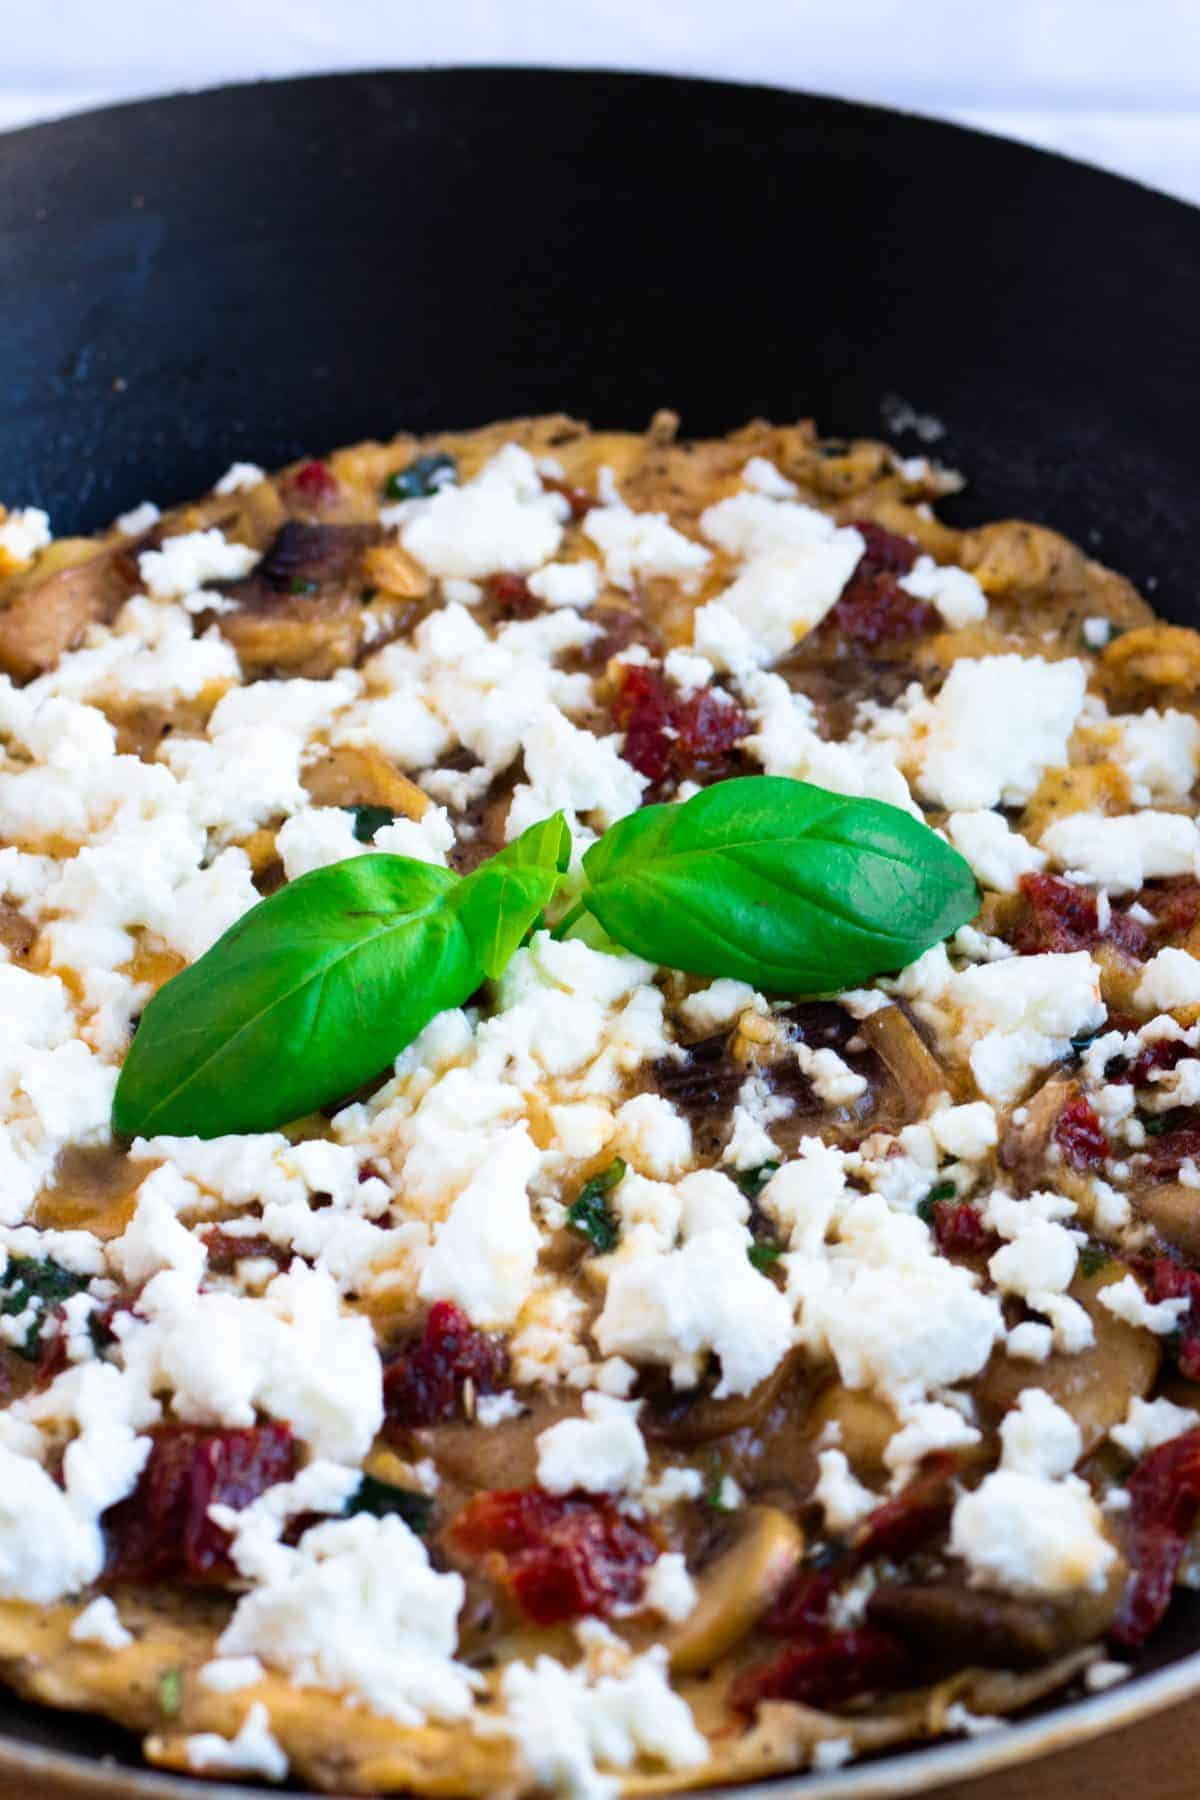 close-up of a breakfast frittata with feta cheese, mushrooms and sun-dried tomatoes in a pan